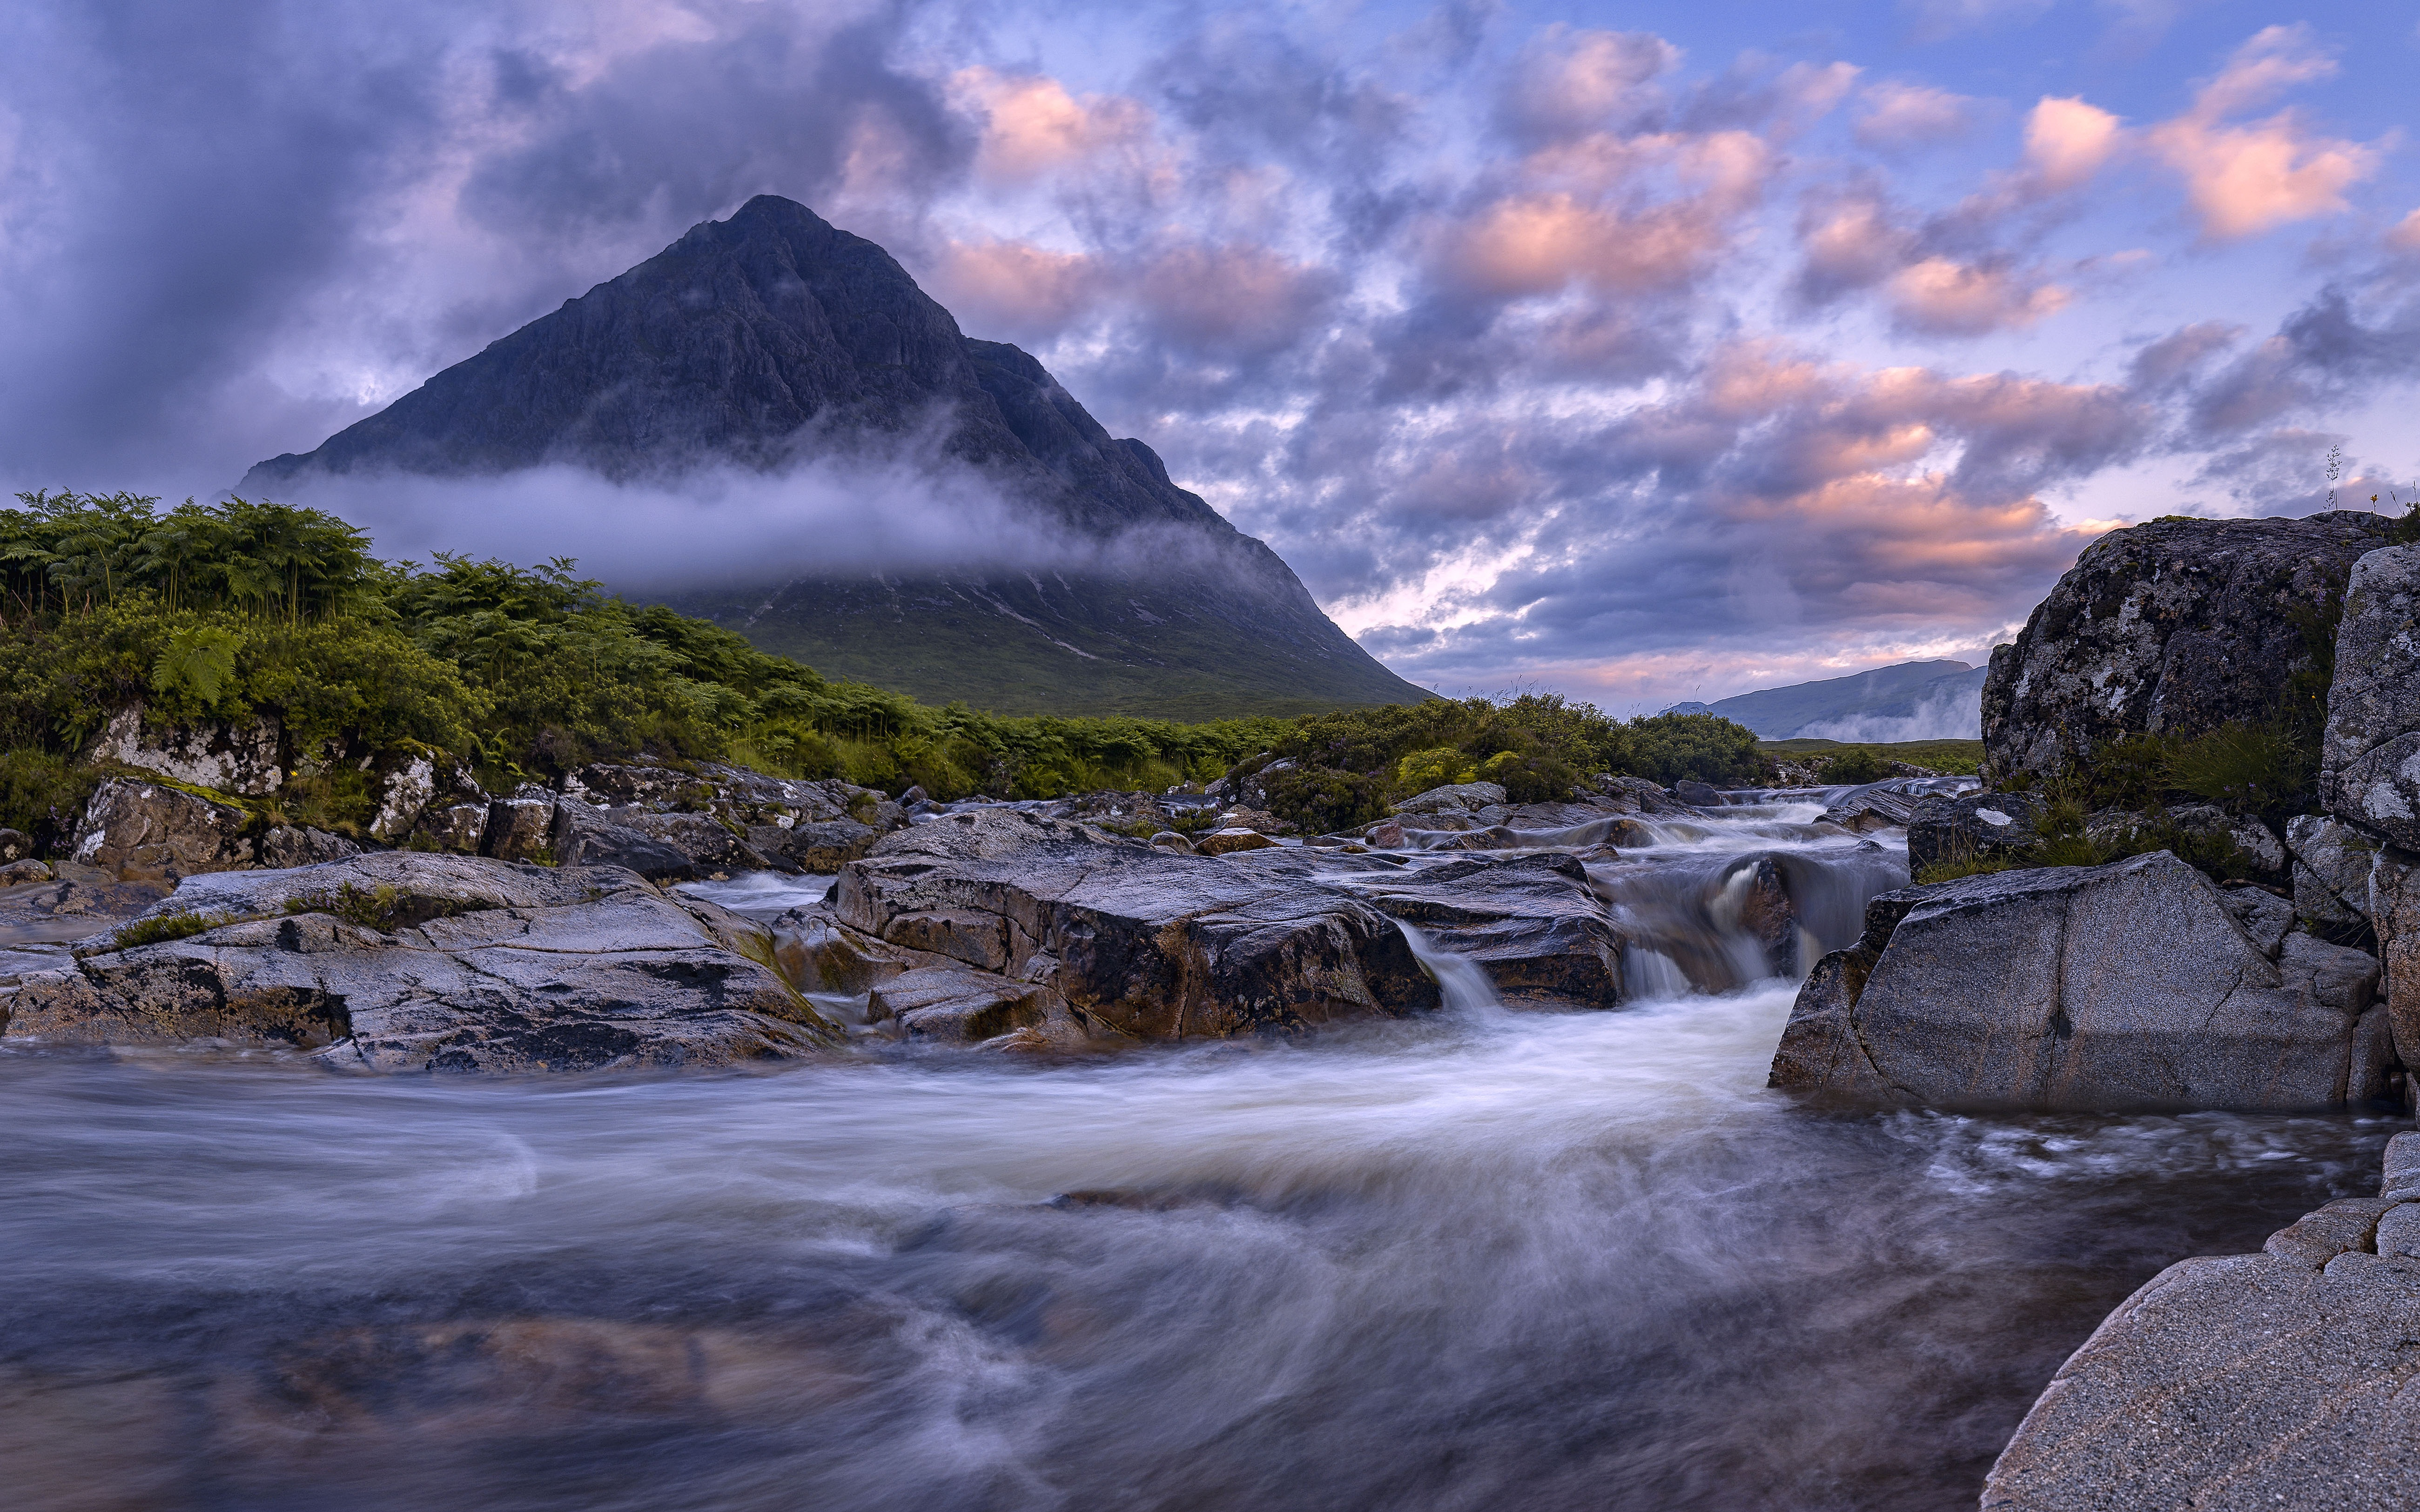 Buachaille Etive Mor Glencoe Scotland View From The River